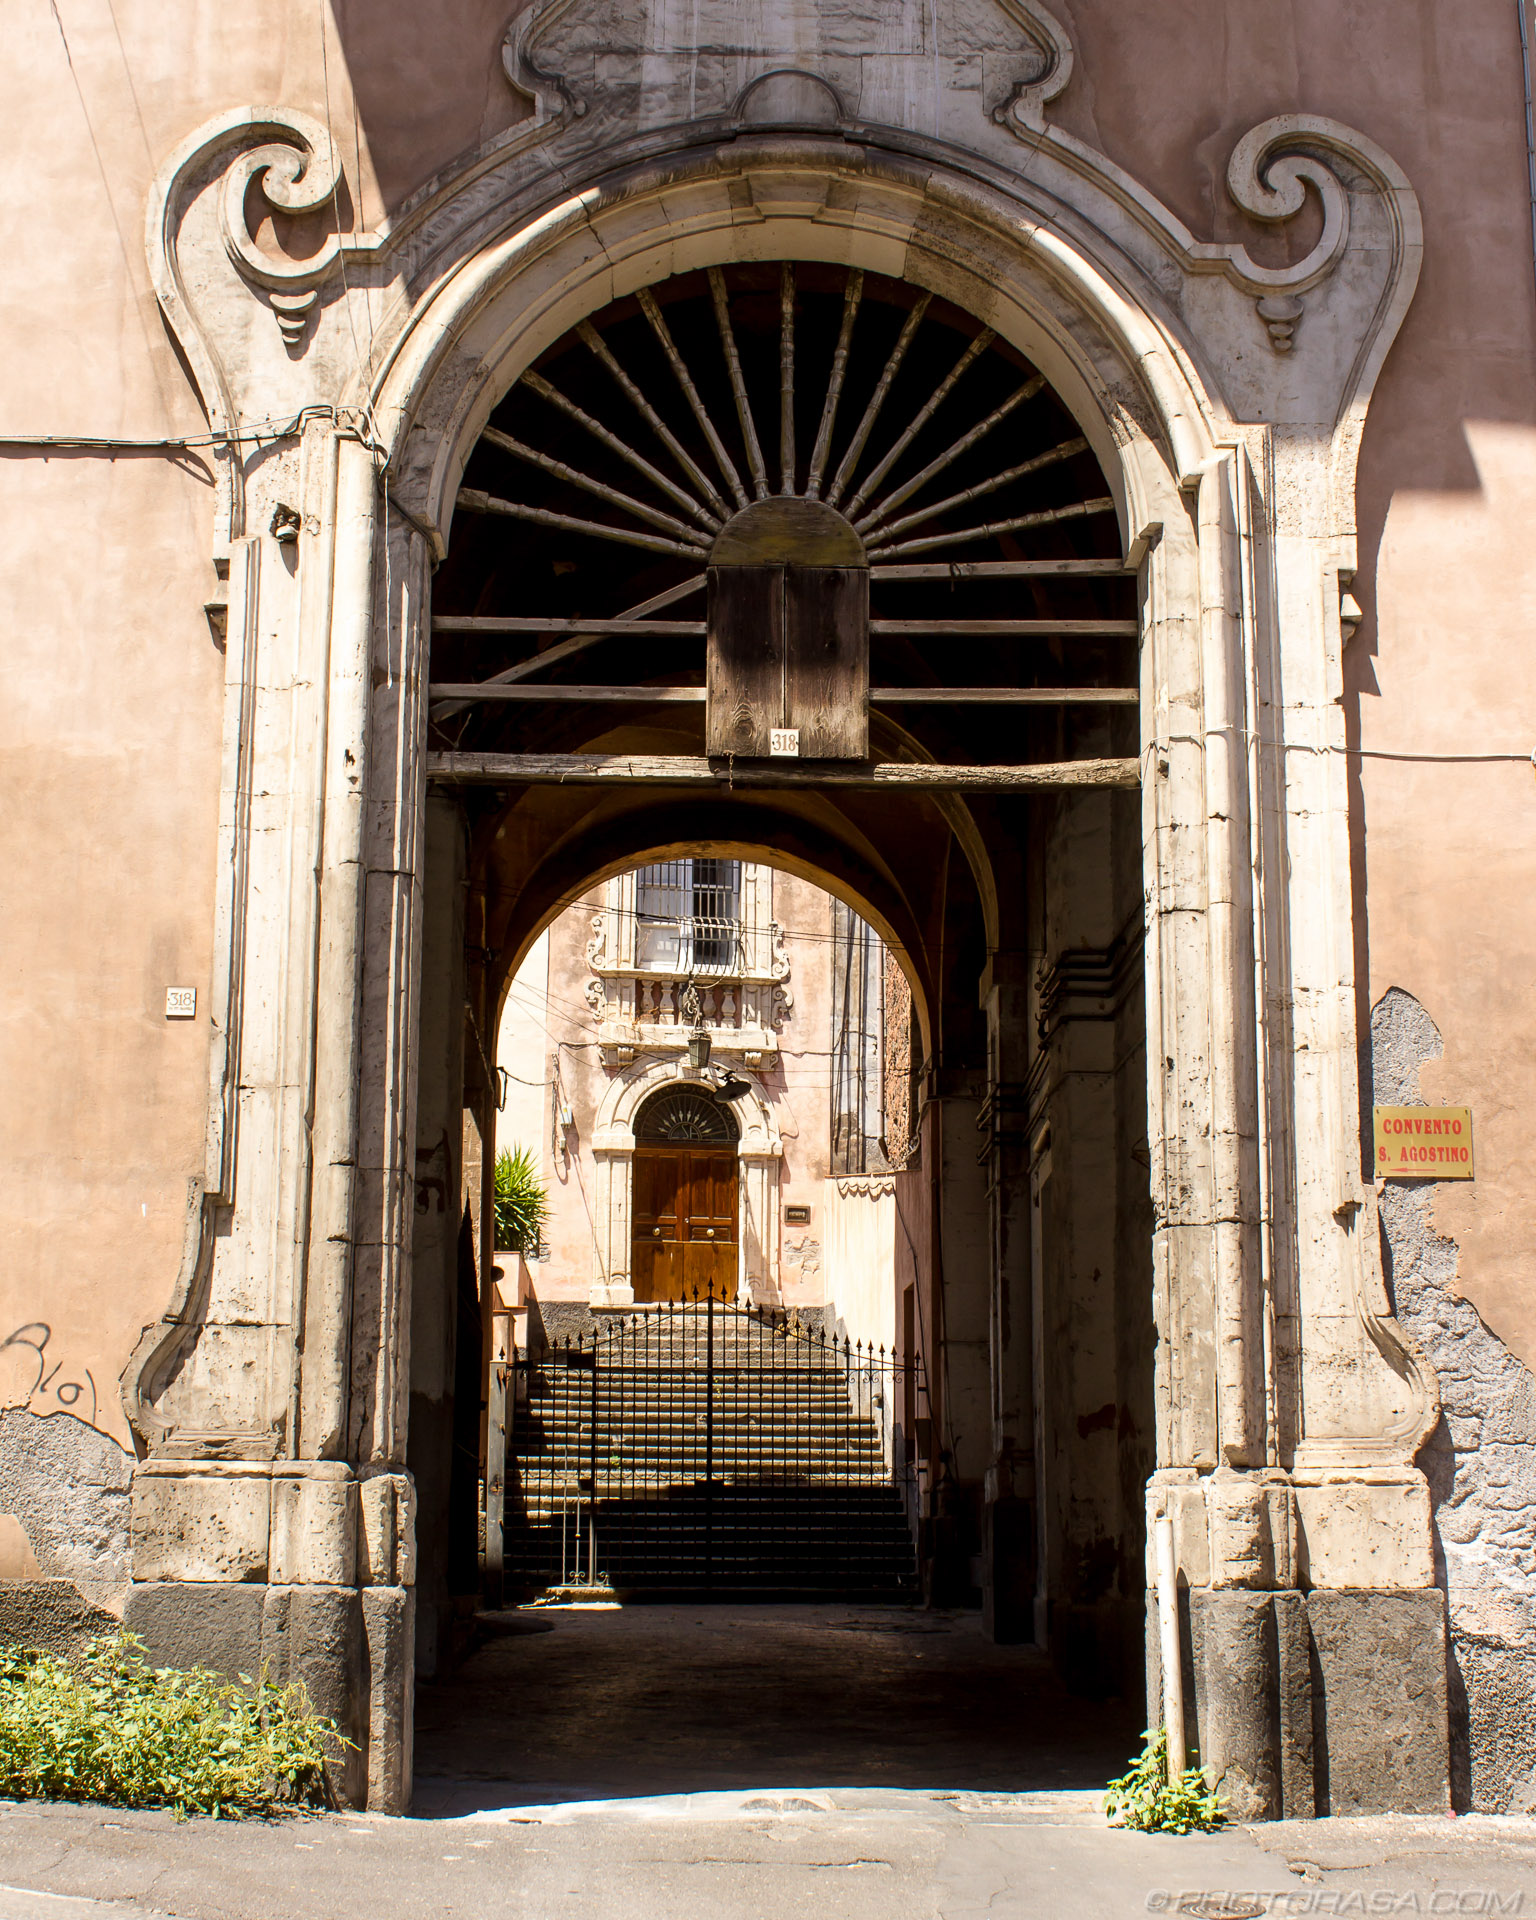 https://photorasa.com/catania/islamic-entrance-in-catania/